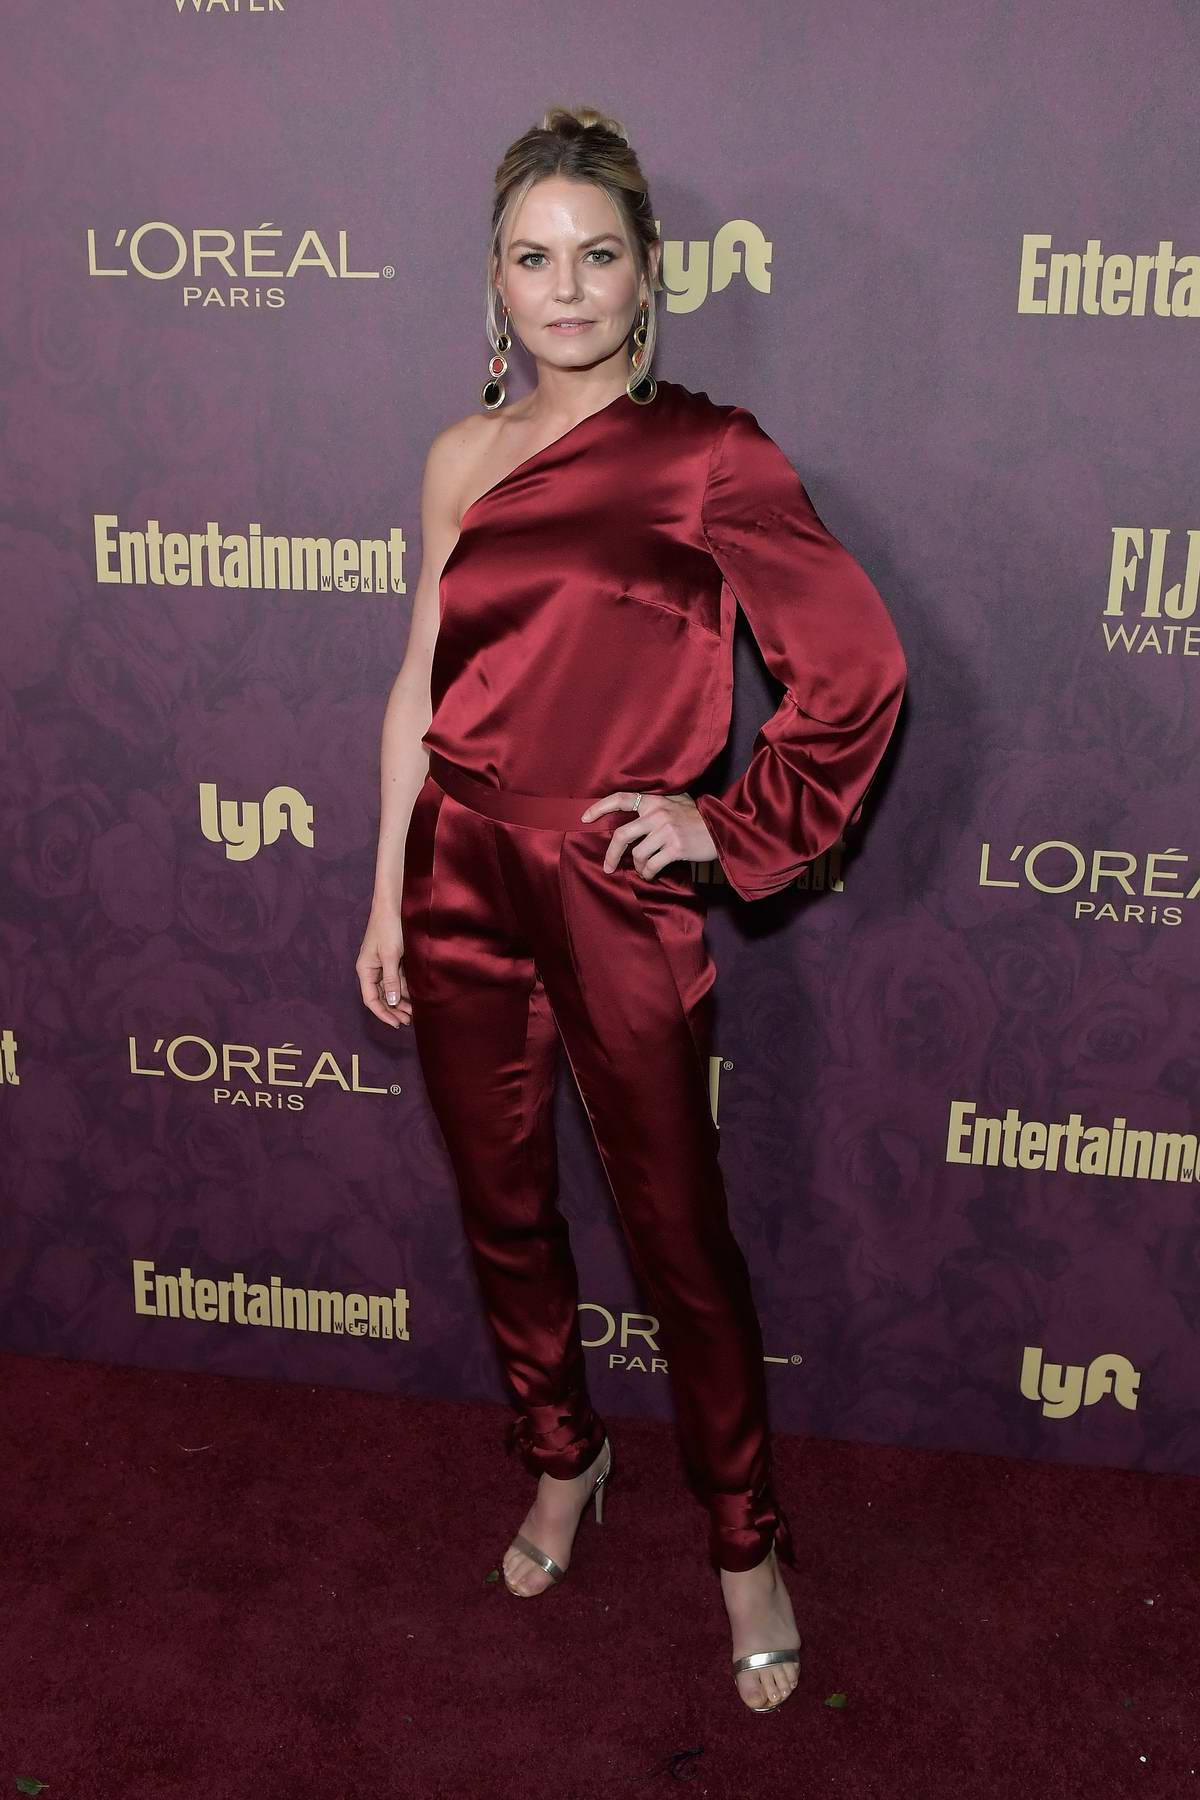 20da72eea Jennifer Morrison attends Entertainment Weekly and L Oreal Paris Pre-Emmy  party in Los